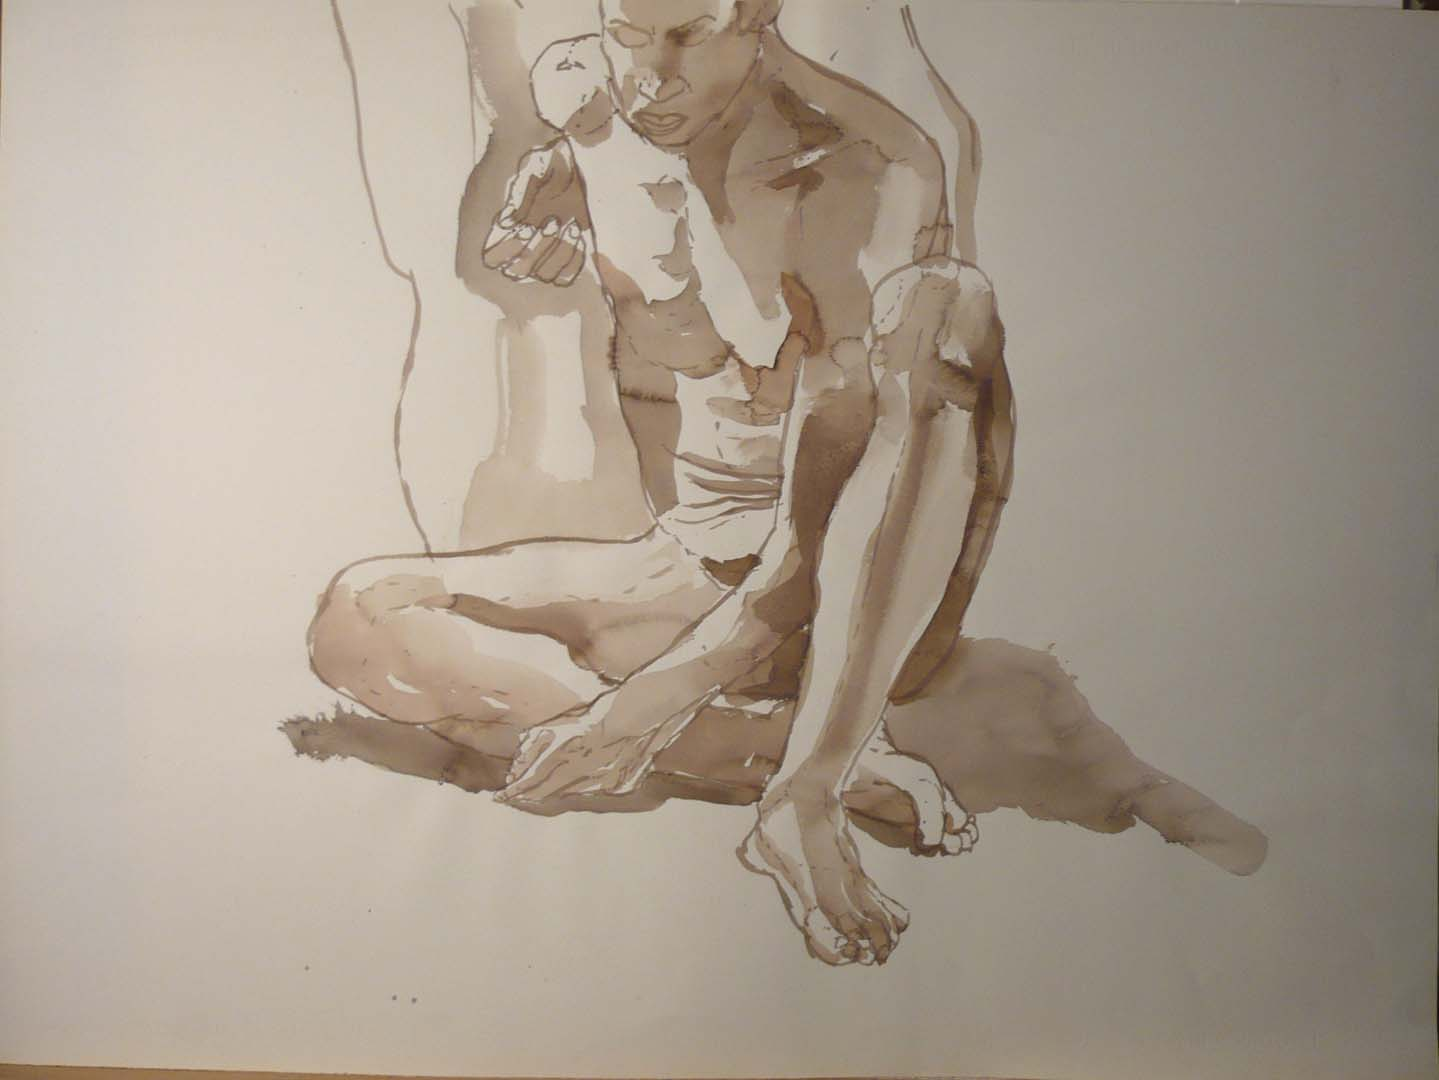 "Seated Male Nude Leaning Against Chair Sepia 22"" x 29.875"""